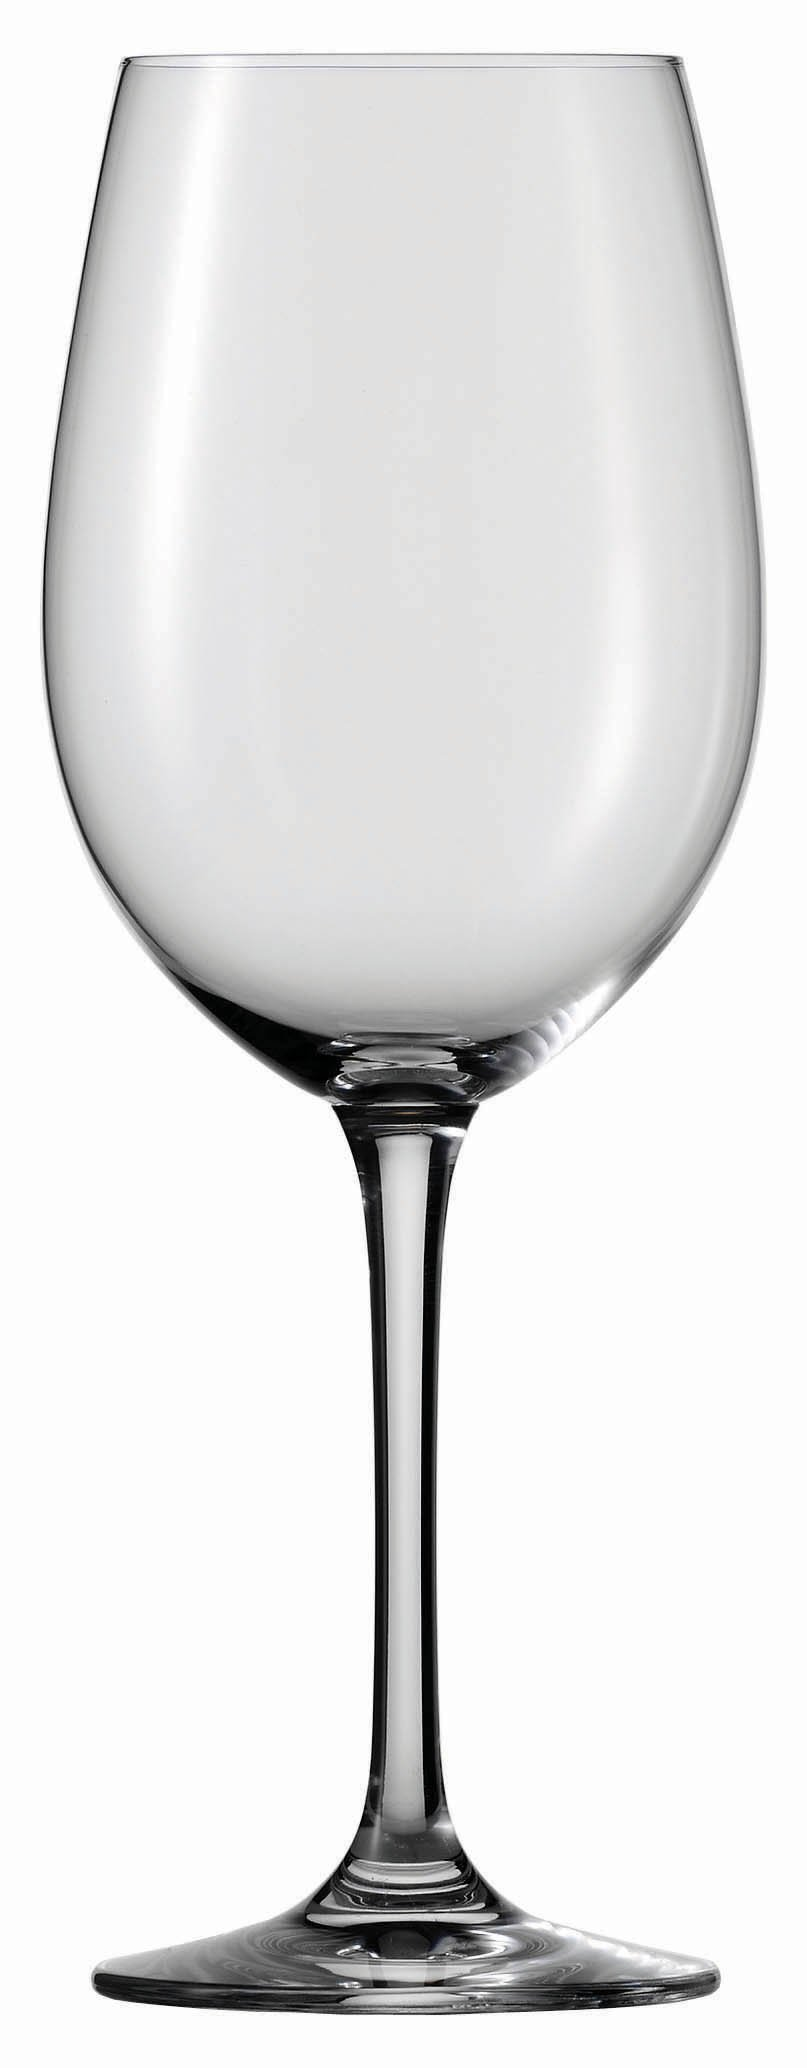 Schott Zwiesel Tritan Crystal Glass Stemware Classico Collection Bordeaux Goblet, 21.8-Ounce, Set of 6